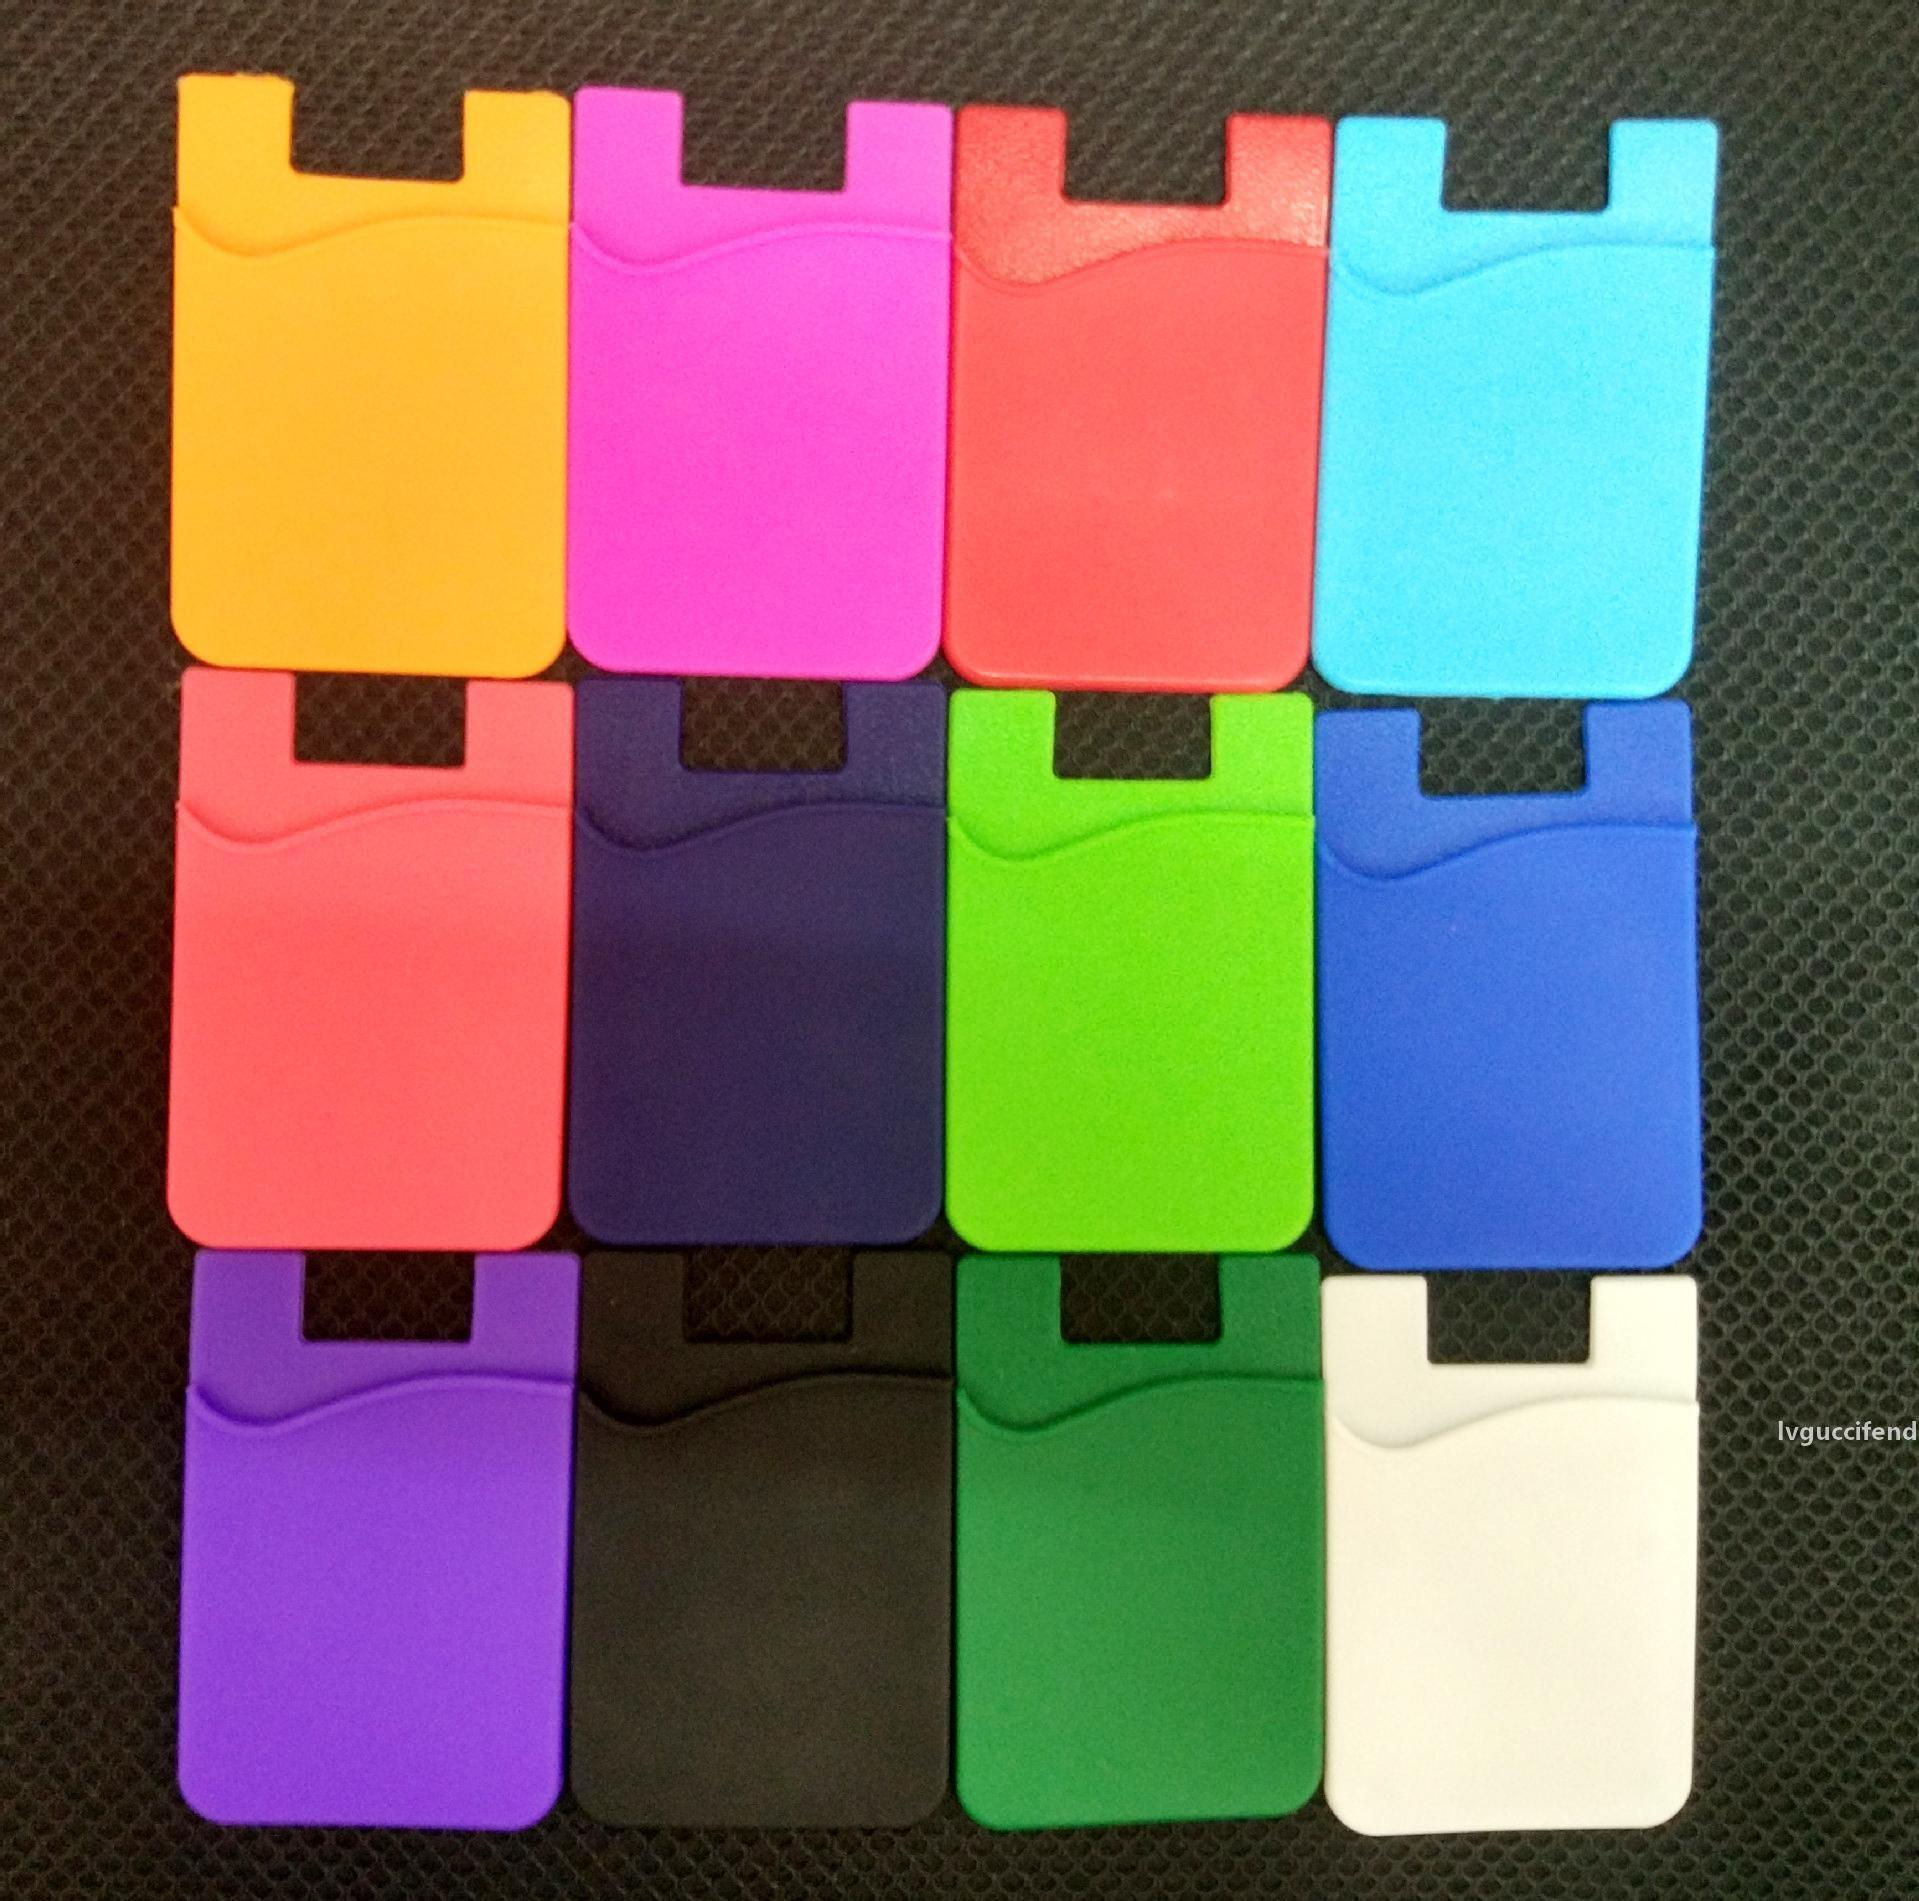 Phone Sticky Wallet Silicone Self Adhesive Card Pocket Covers Colorful Credit Card Holder Wallet Smart Silicone Phone Pouch 3M Sticky